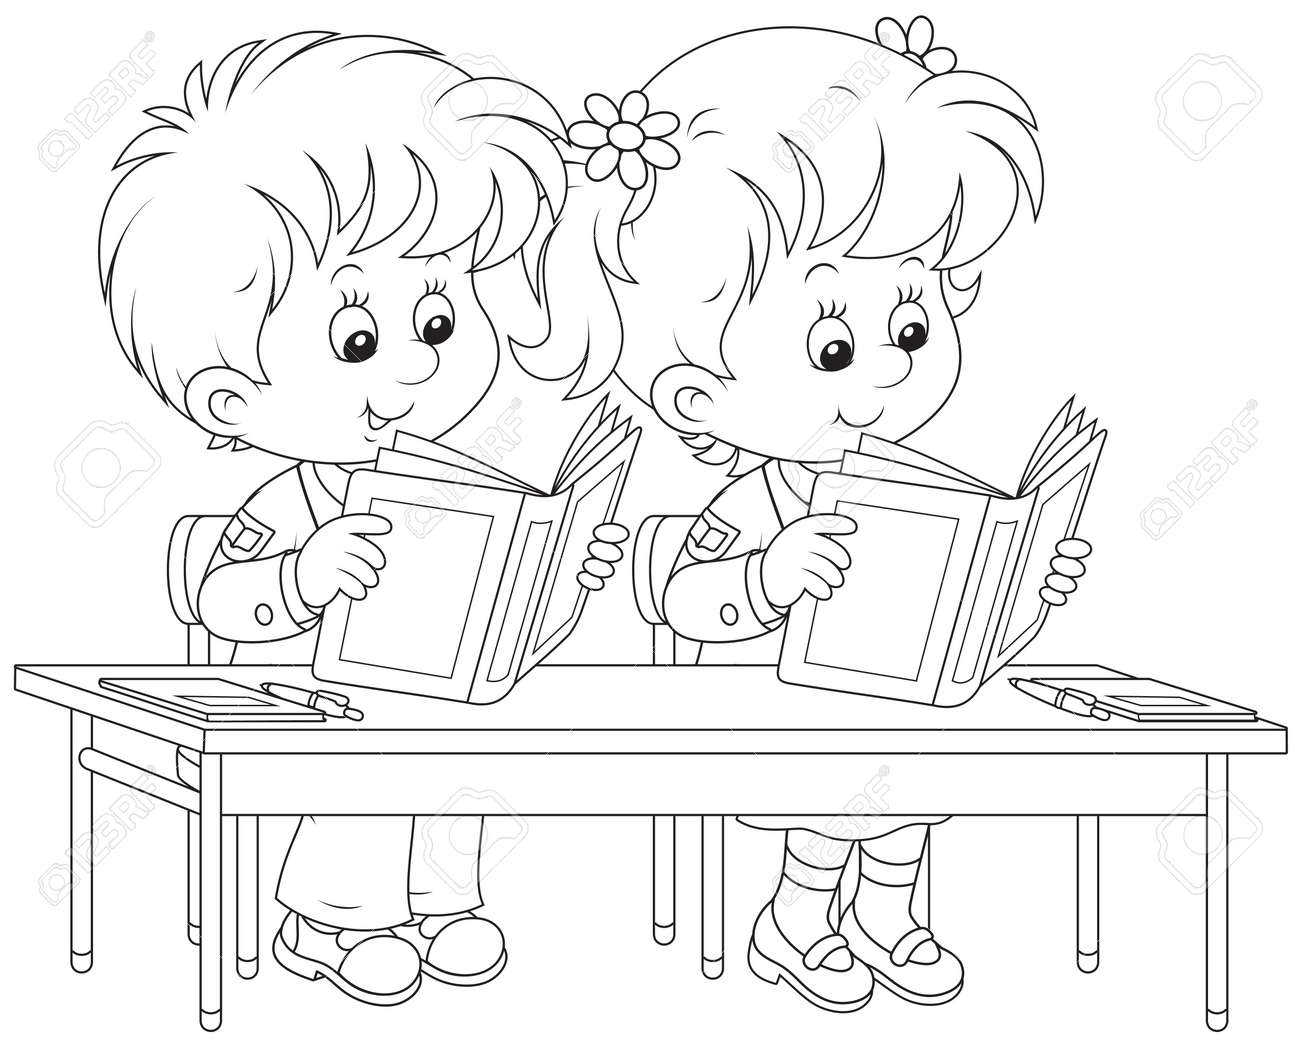 Free coloring pages for school kids - School Children Read At A Lesson Stock Vector 27710973